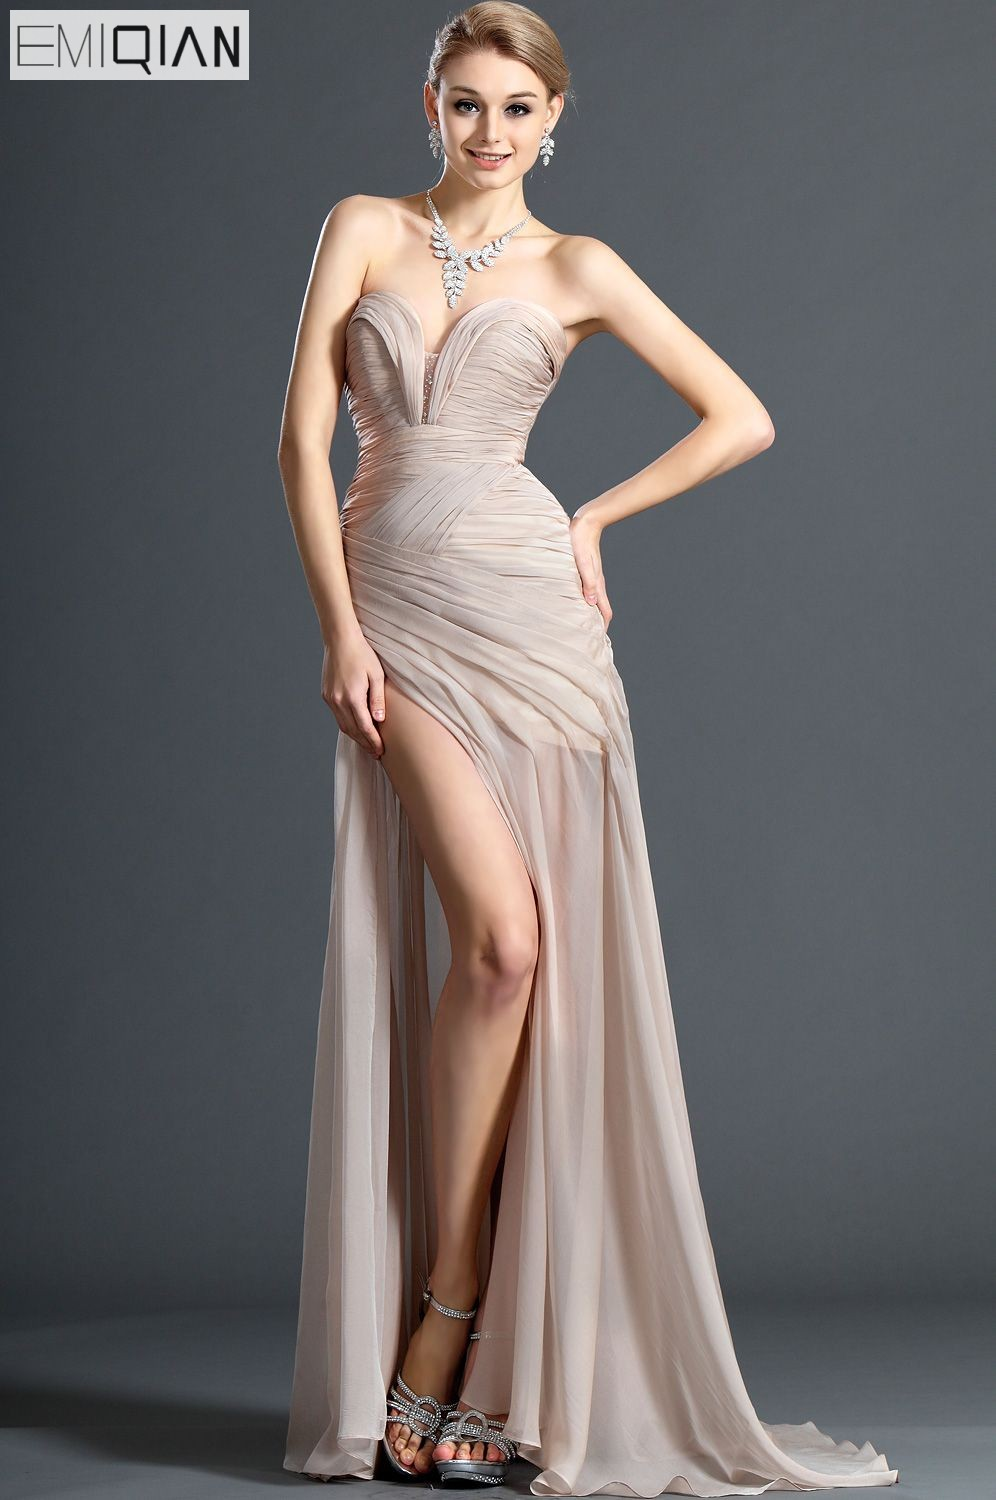 Freeshipping New Fashionable Strapless Notched Neckline Front Slit Champagne Chiffon   Evening     Dresses